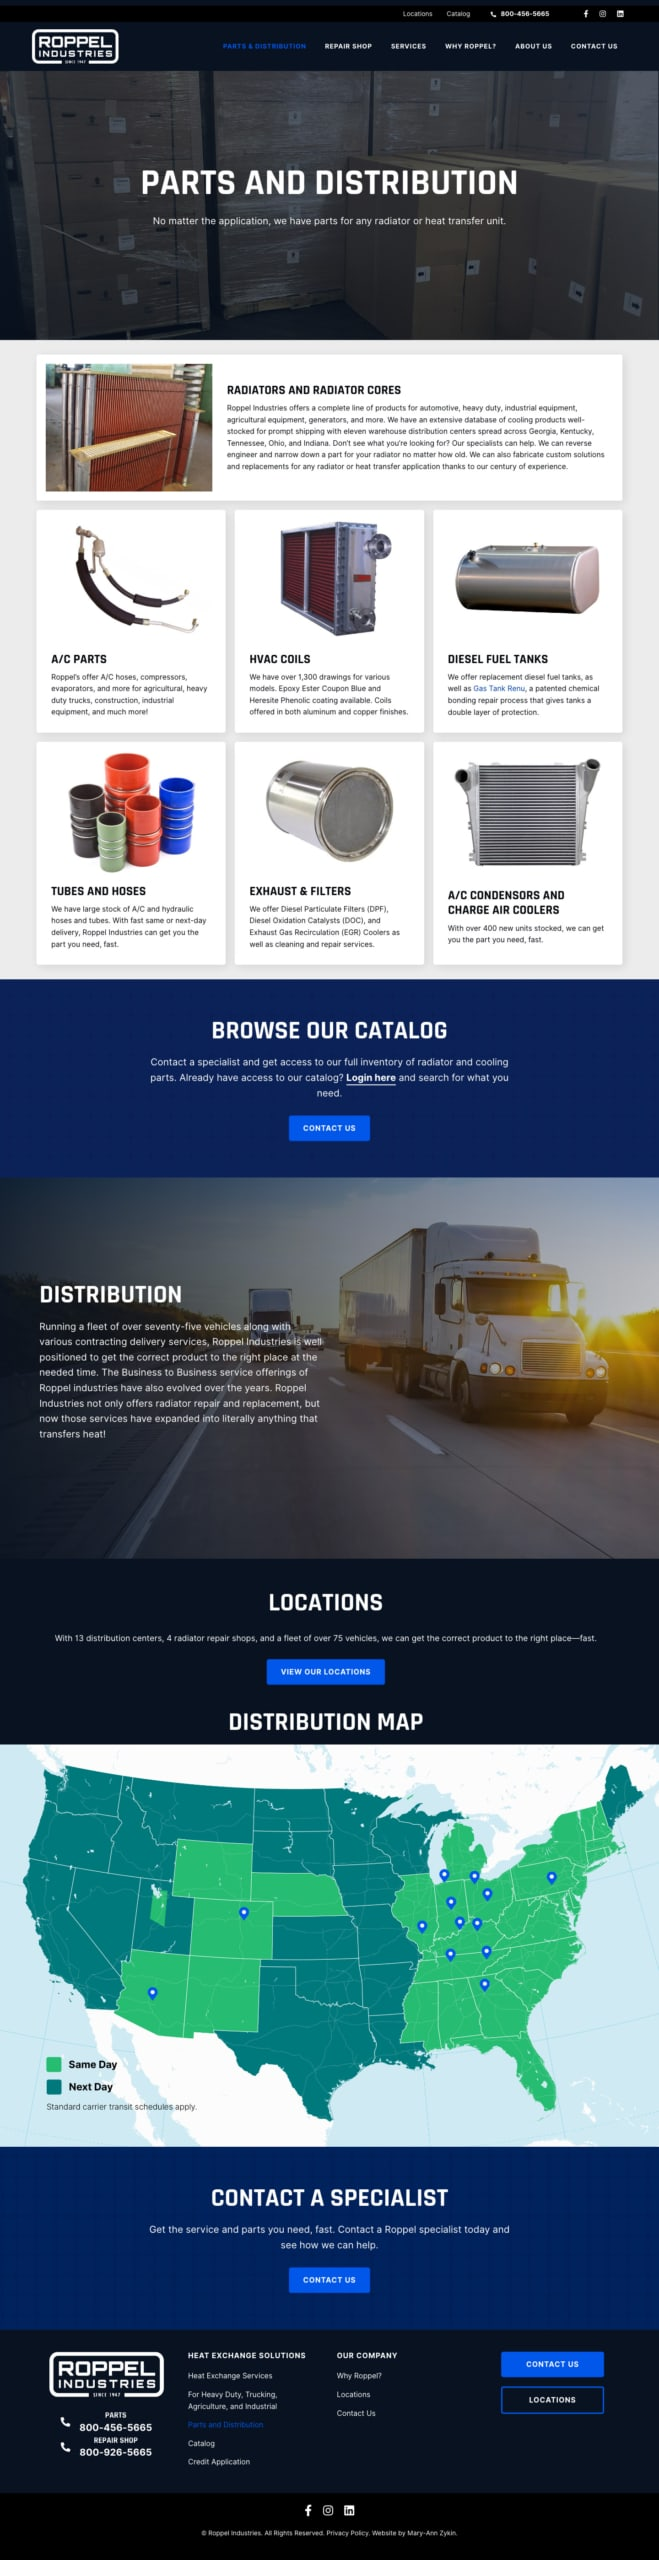 Roppel Industries Parts & Distribution Page